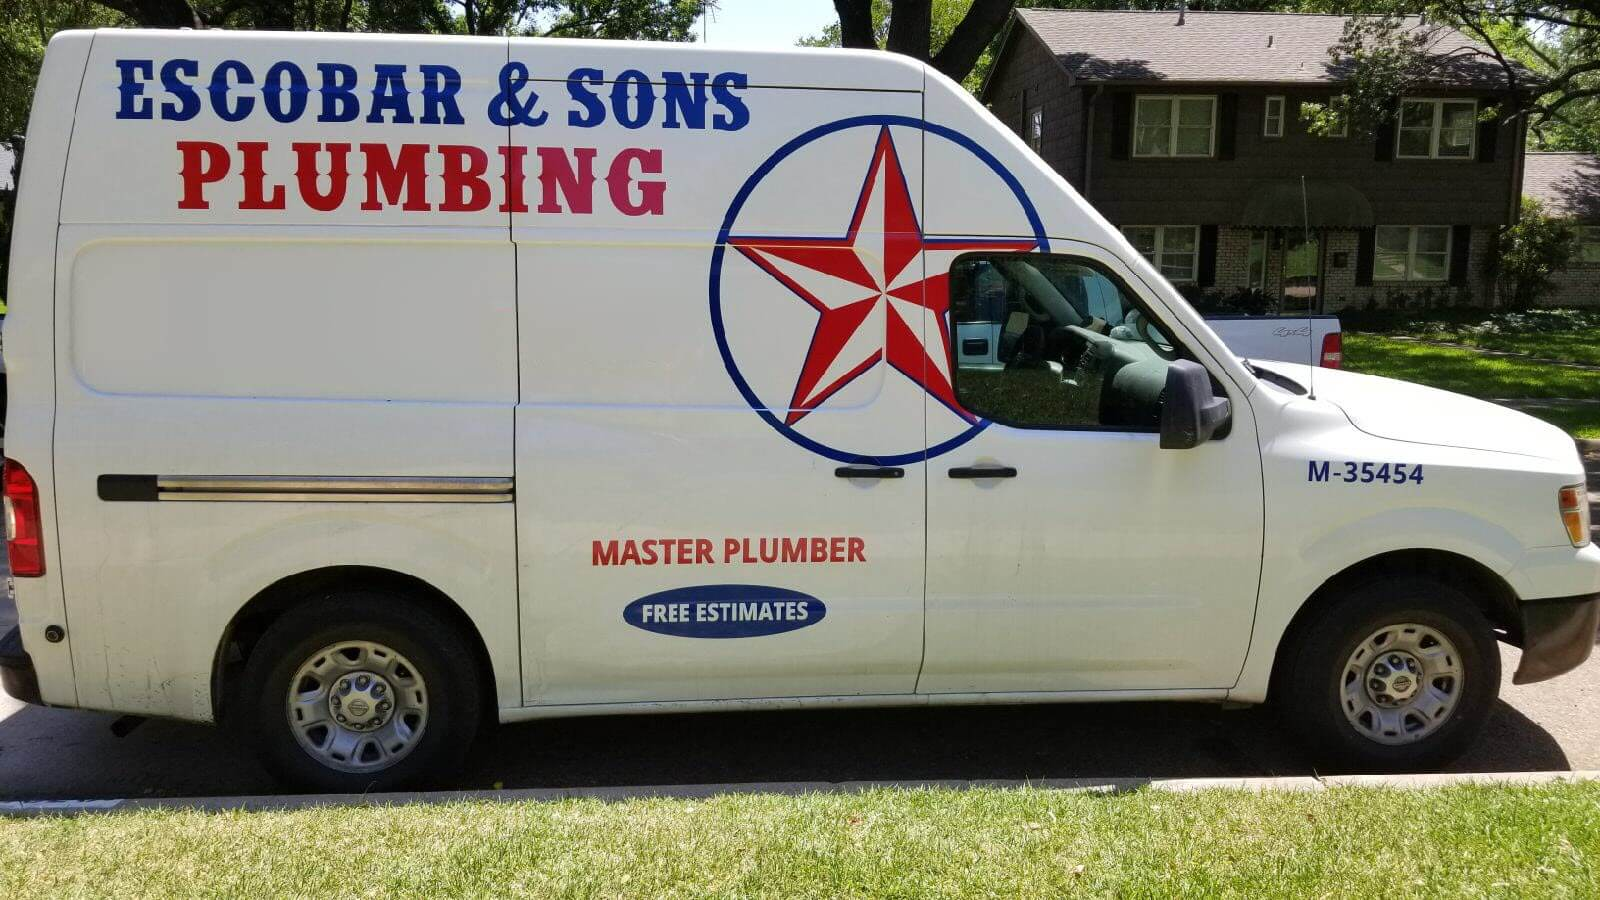 Plumbers Dallas TX-Contact Escobar & Sons Plumbing Today